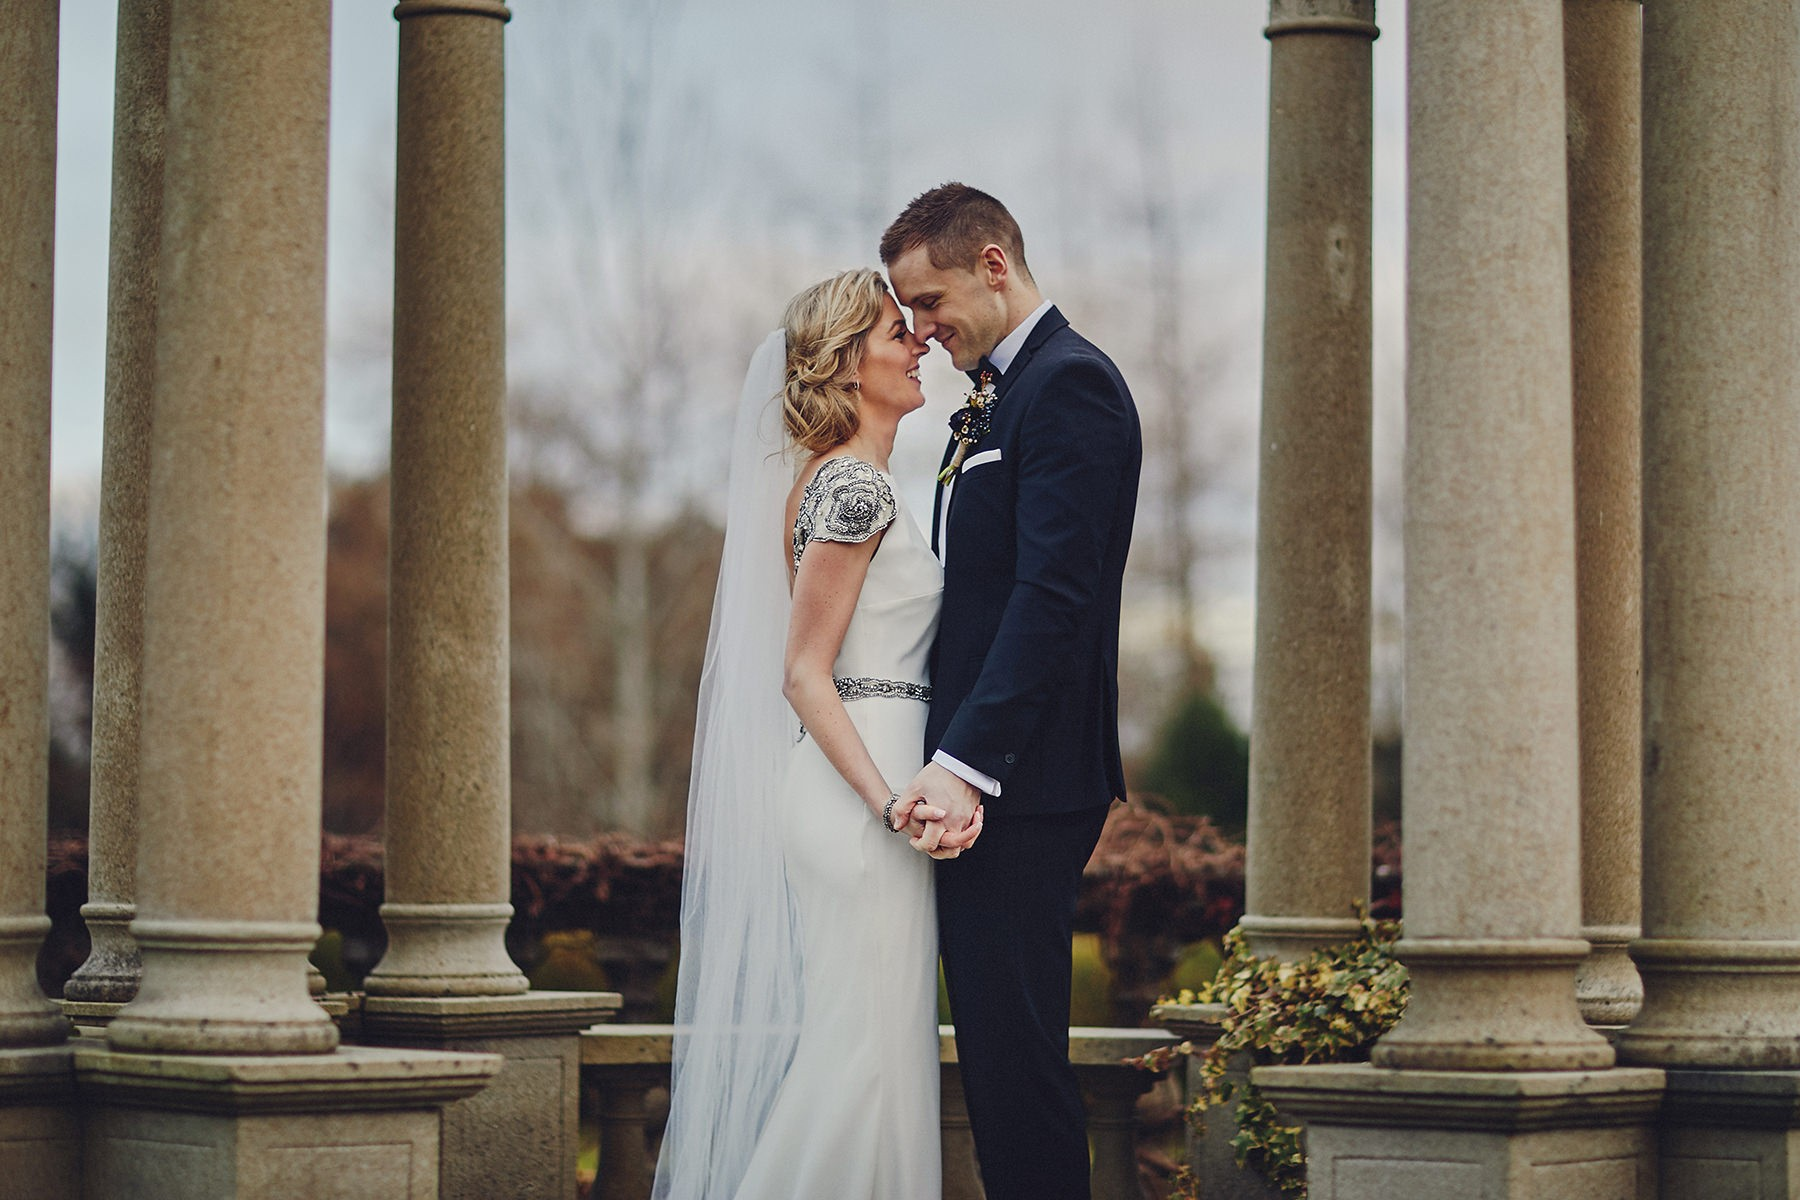 Perfcet Wedding Venue Dublin Palmerstown Estate034 - Perfect Wedding Venue close to Dublin?